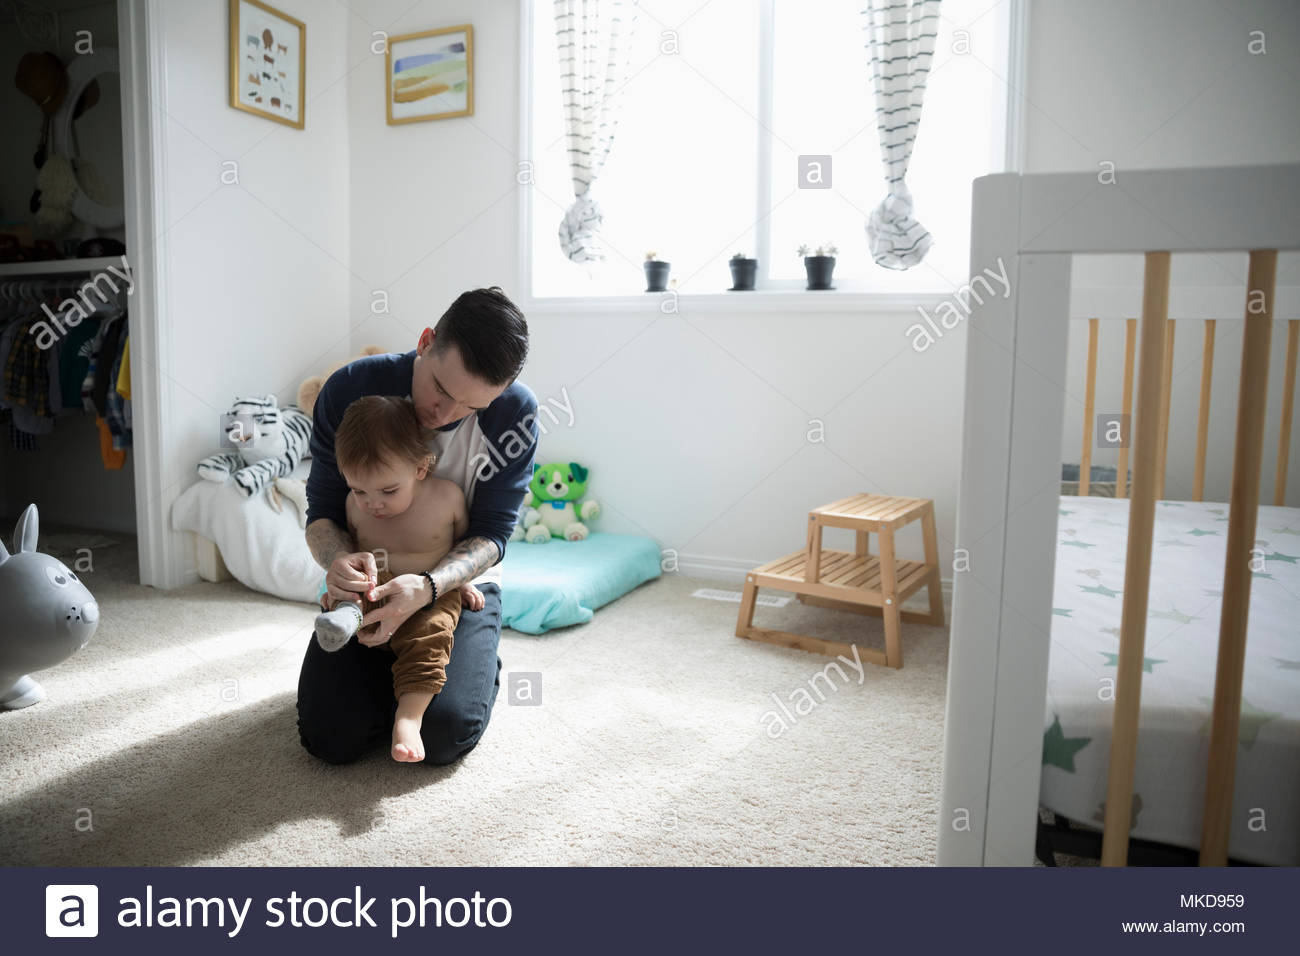 Father dressing, putting socks on baby son in nursery - Stock Image